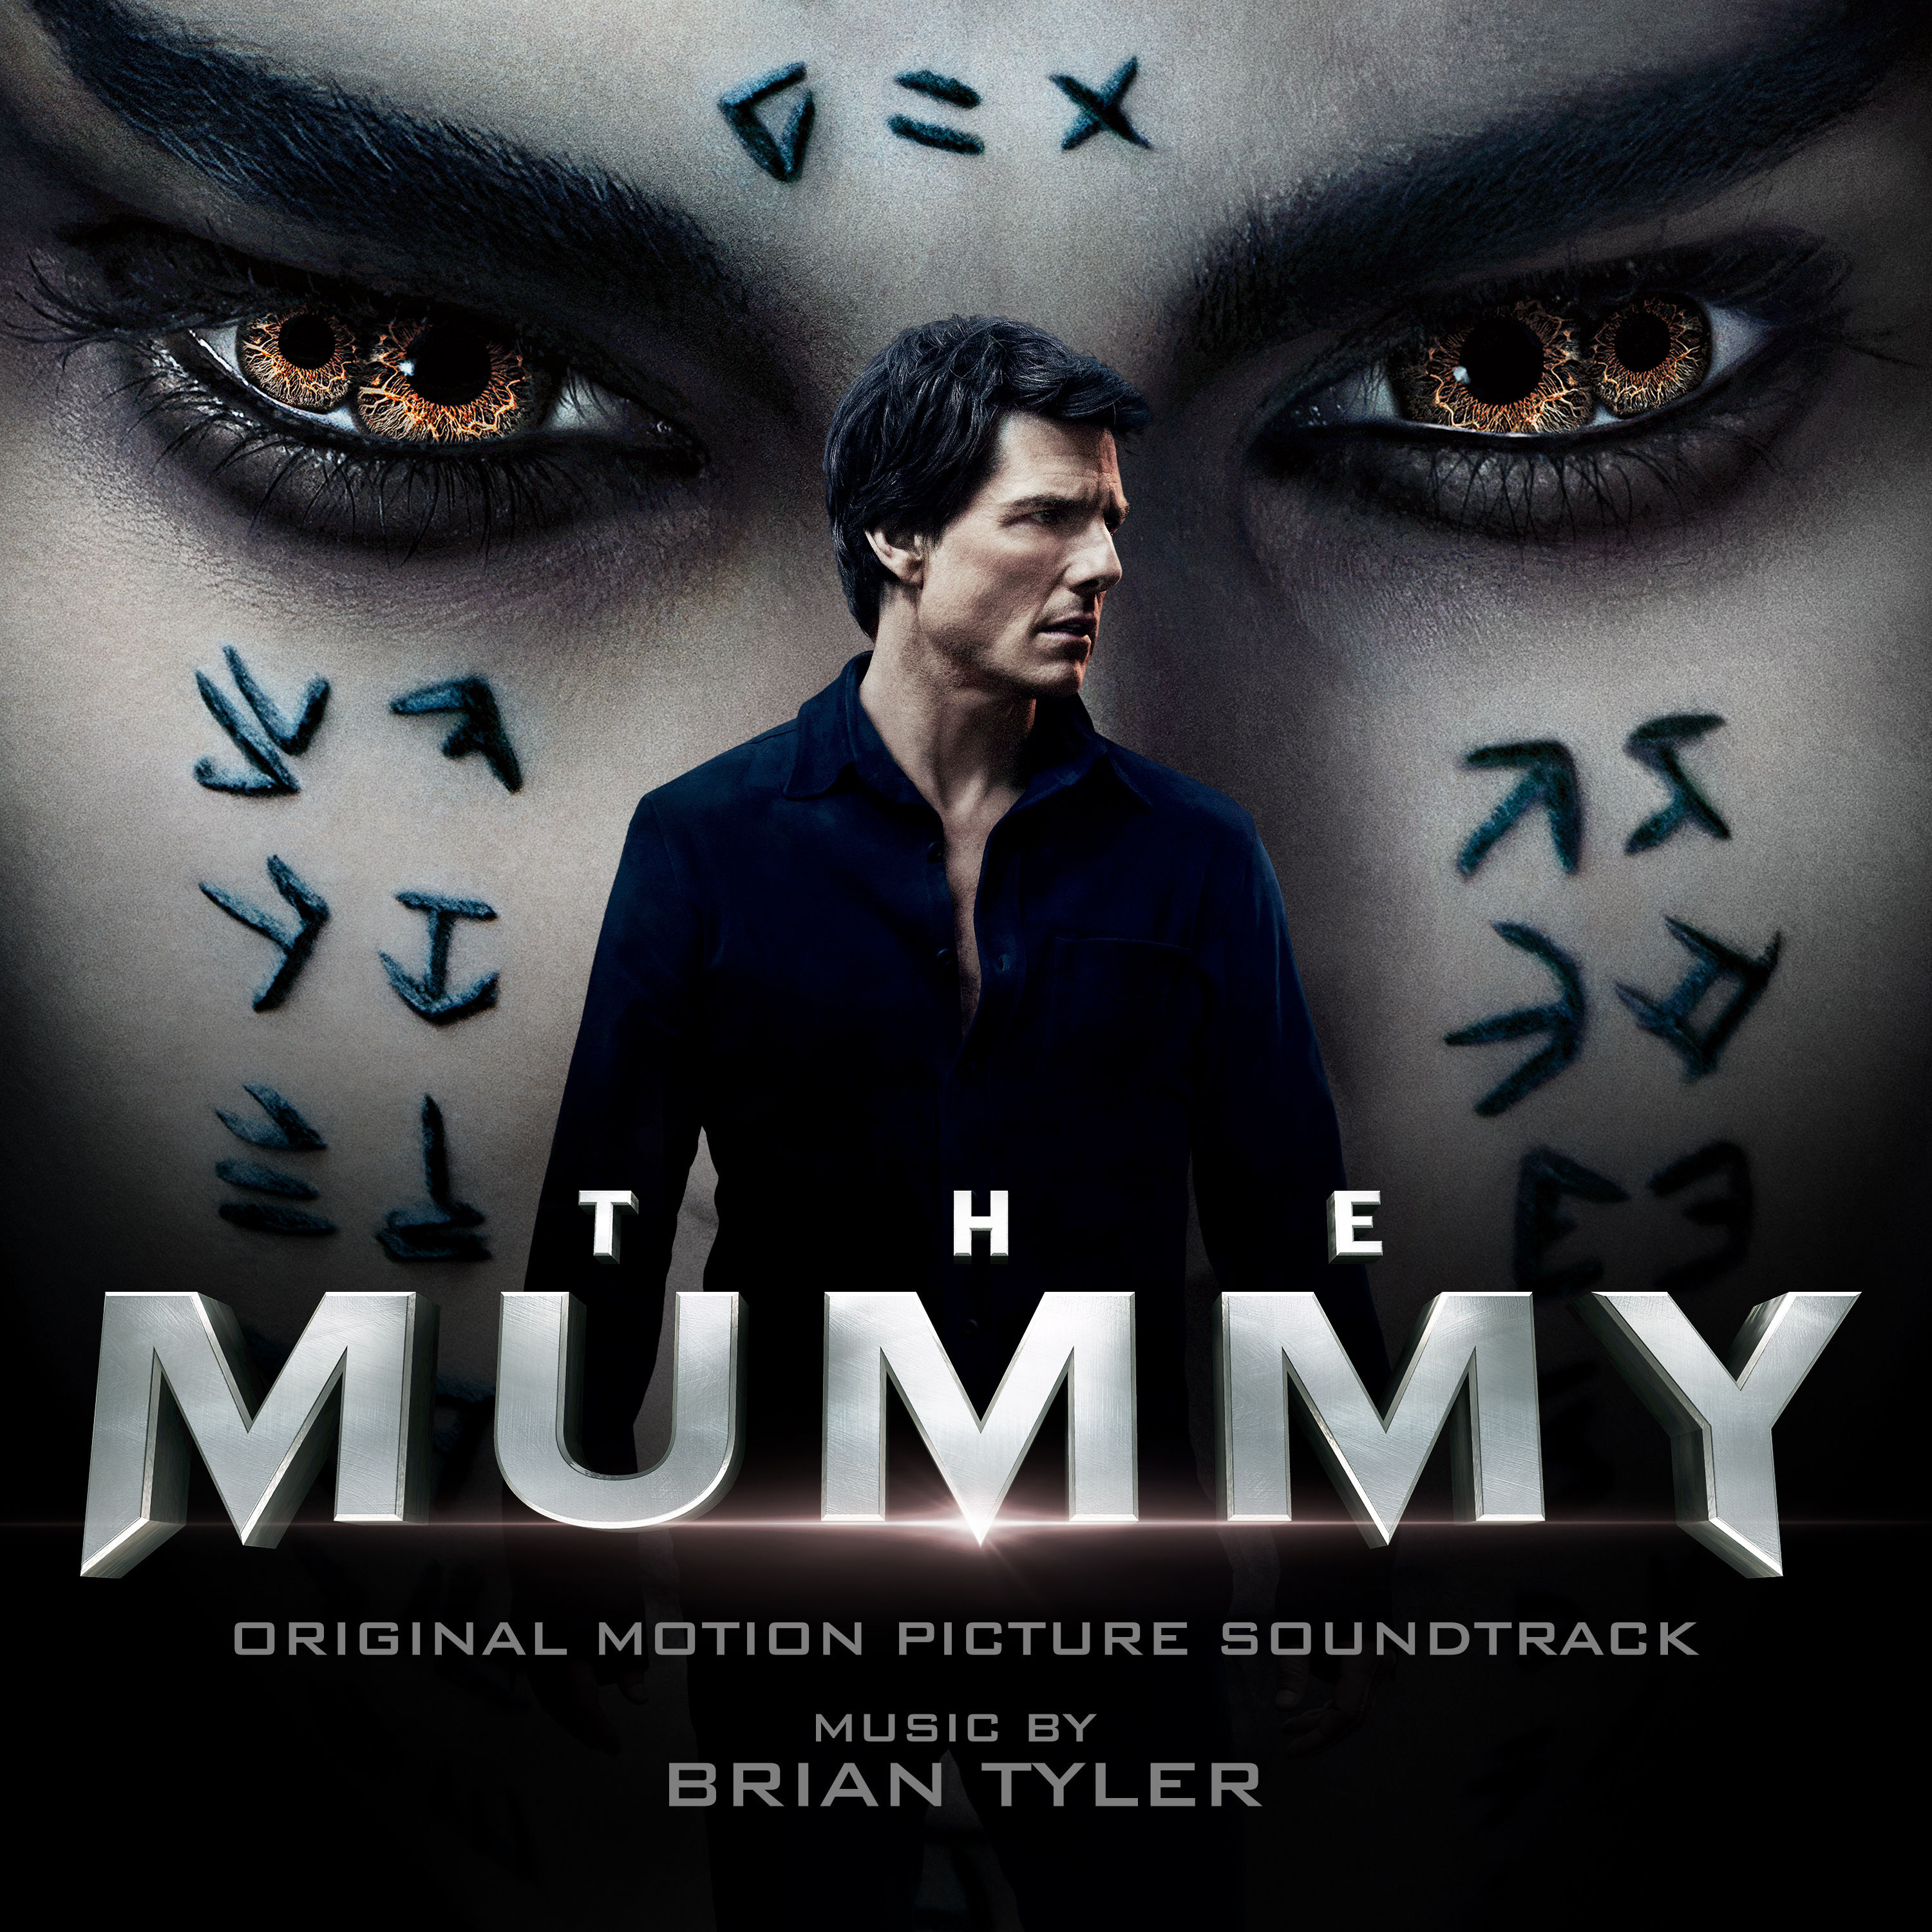 the mummy original motion picture soundtrack digital